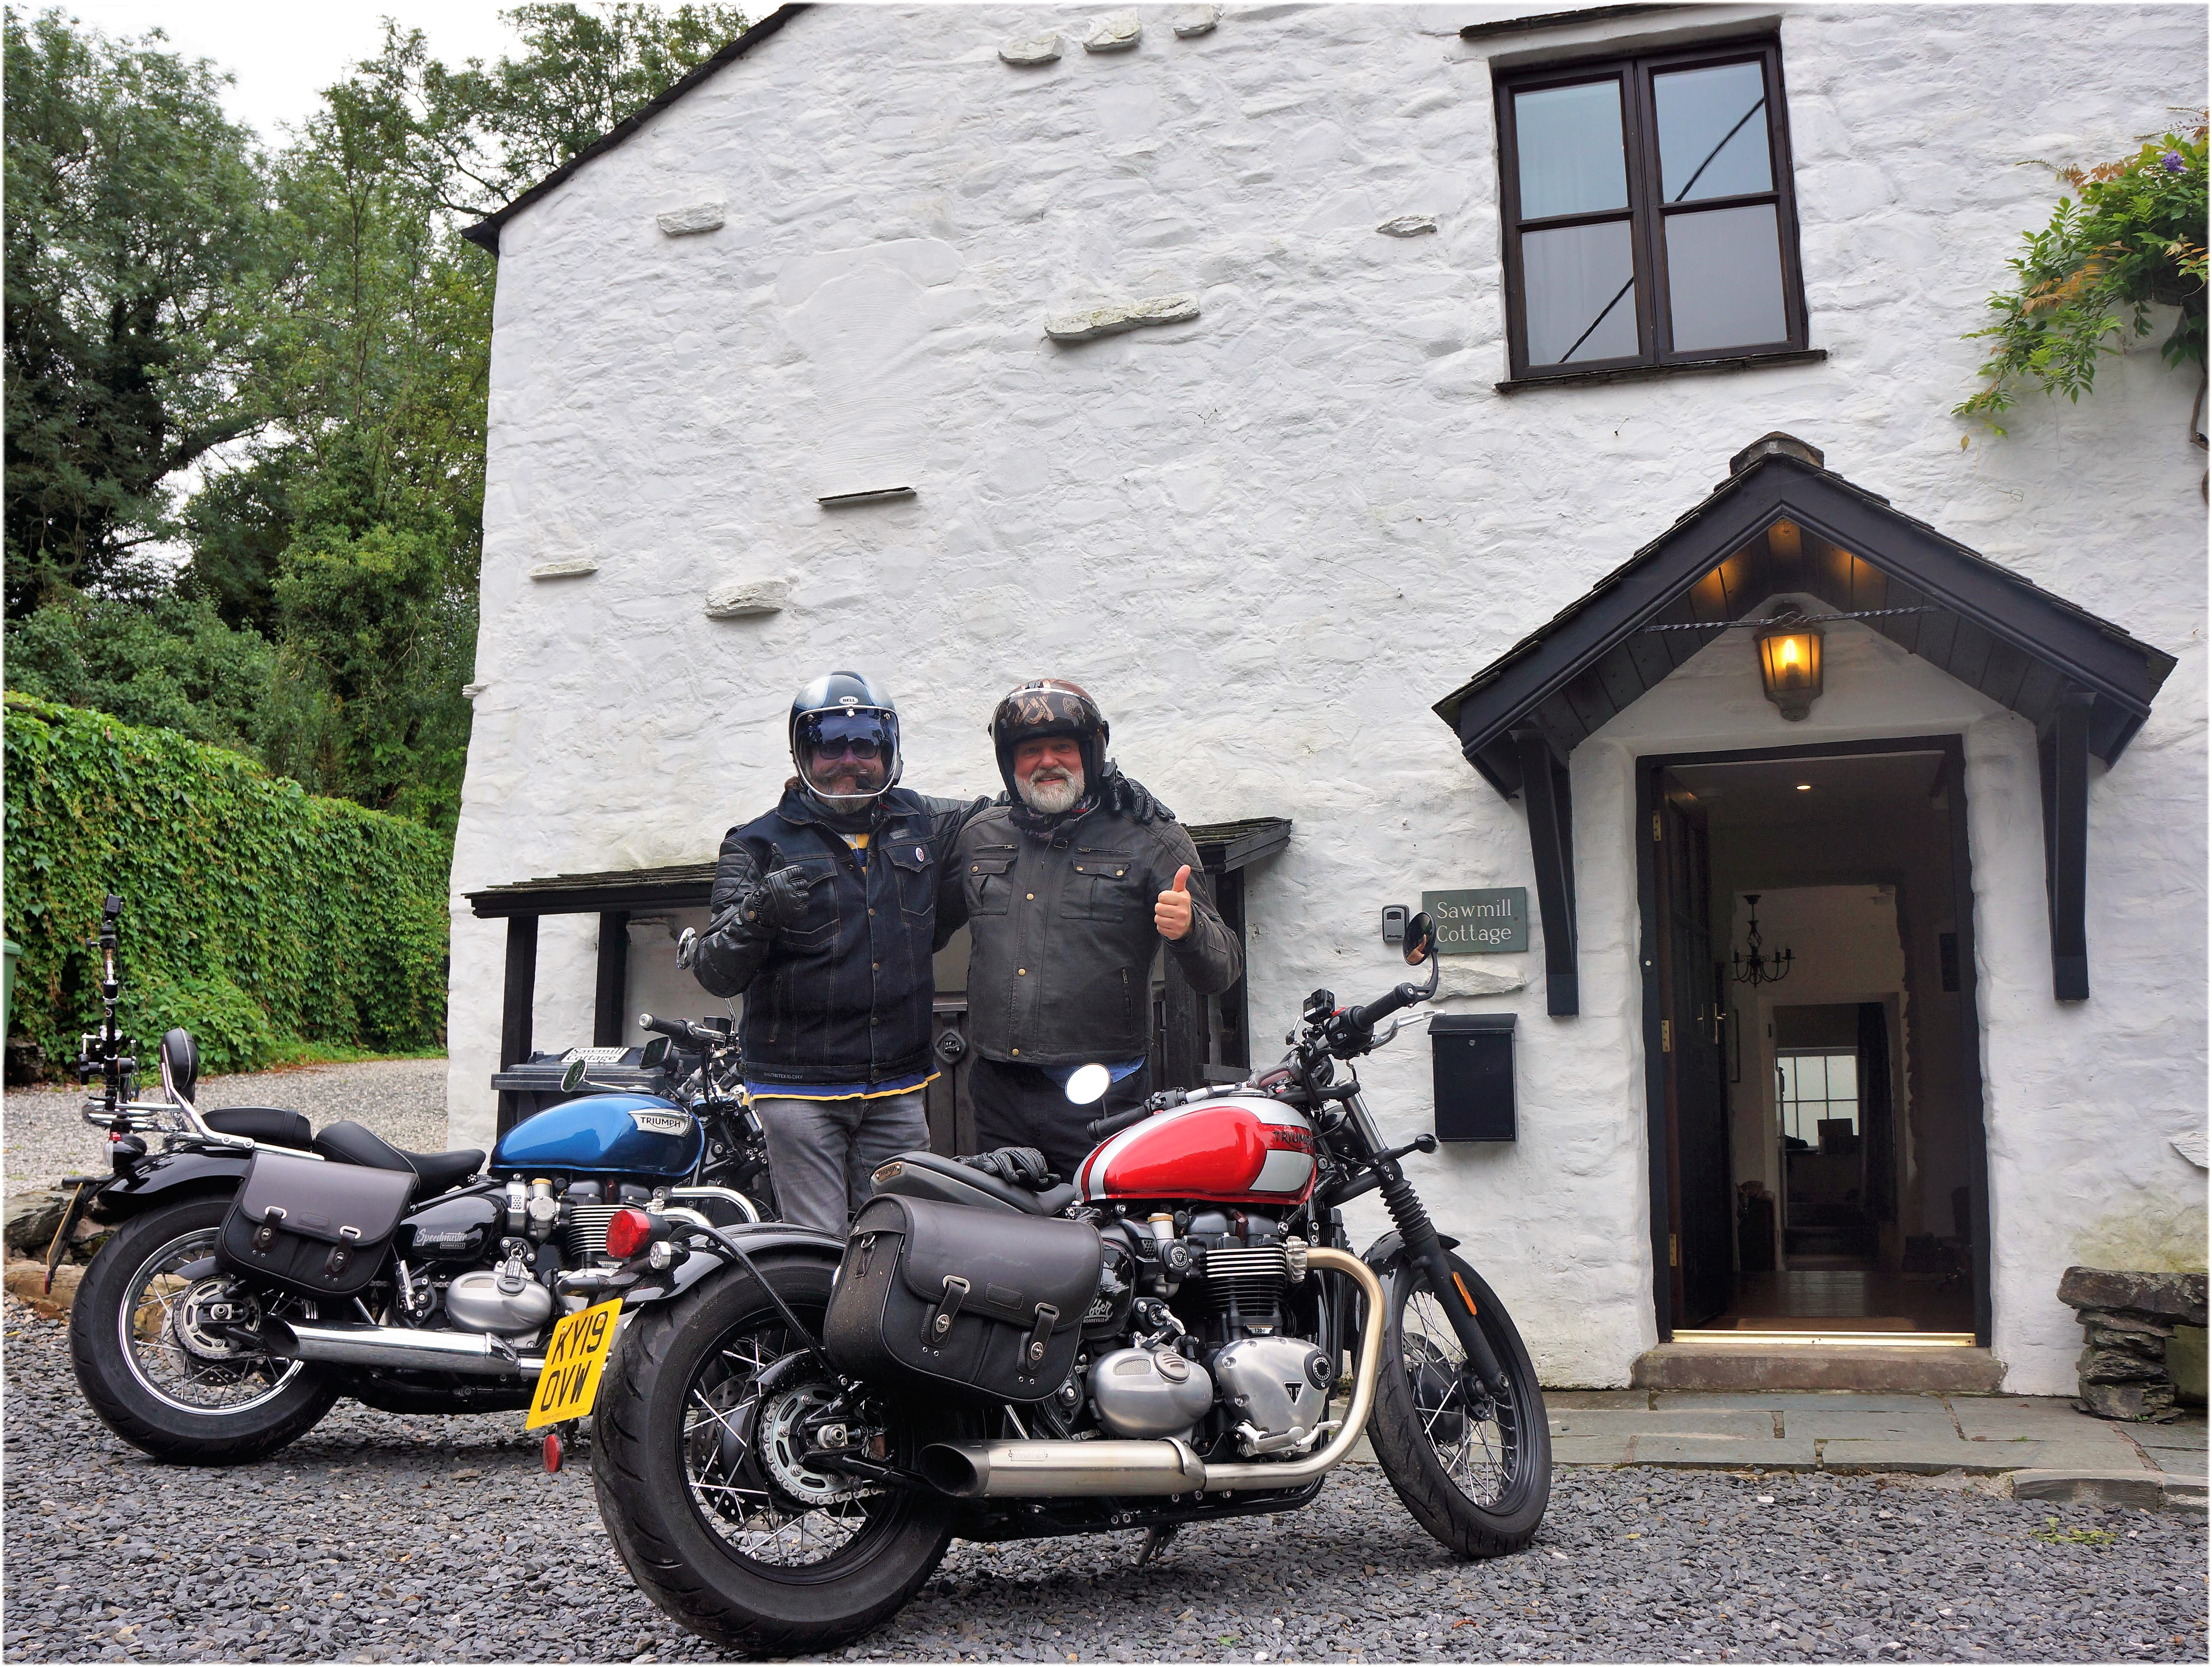 The Hairy Bikers at Sawmill Cottage on the BBC series